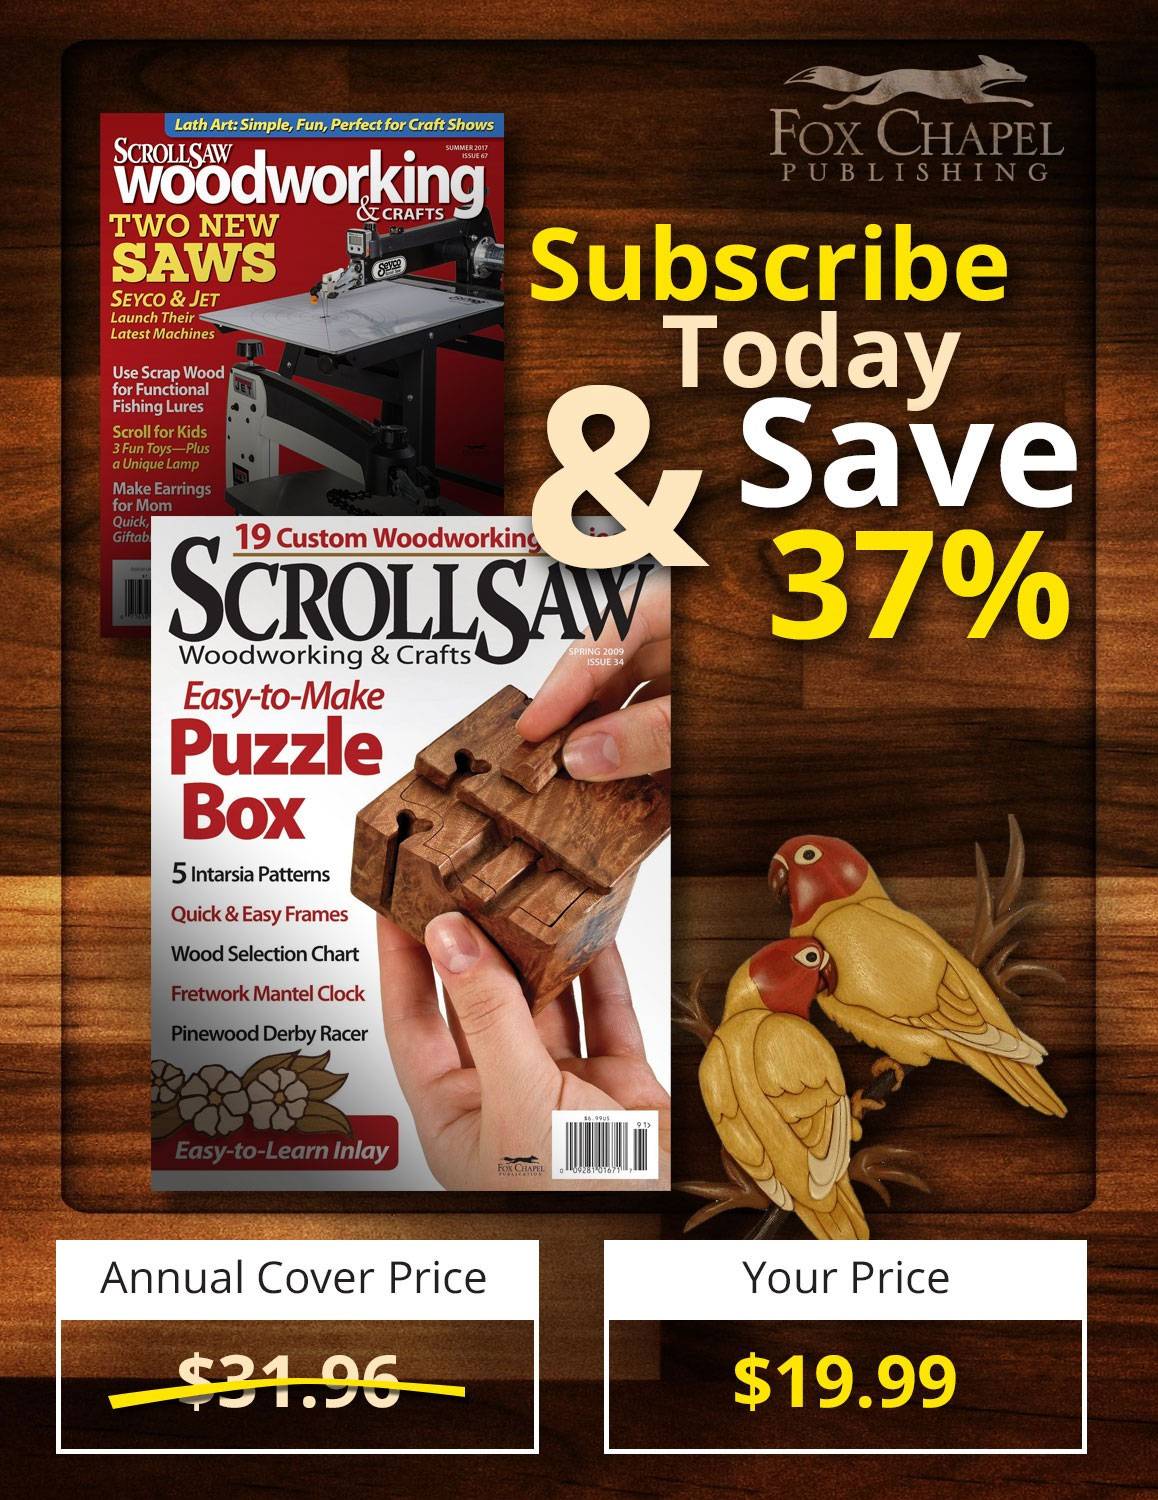 Subscribe Today to Scroll Saw Magazine and Save 37% on Your Subscription.